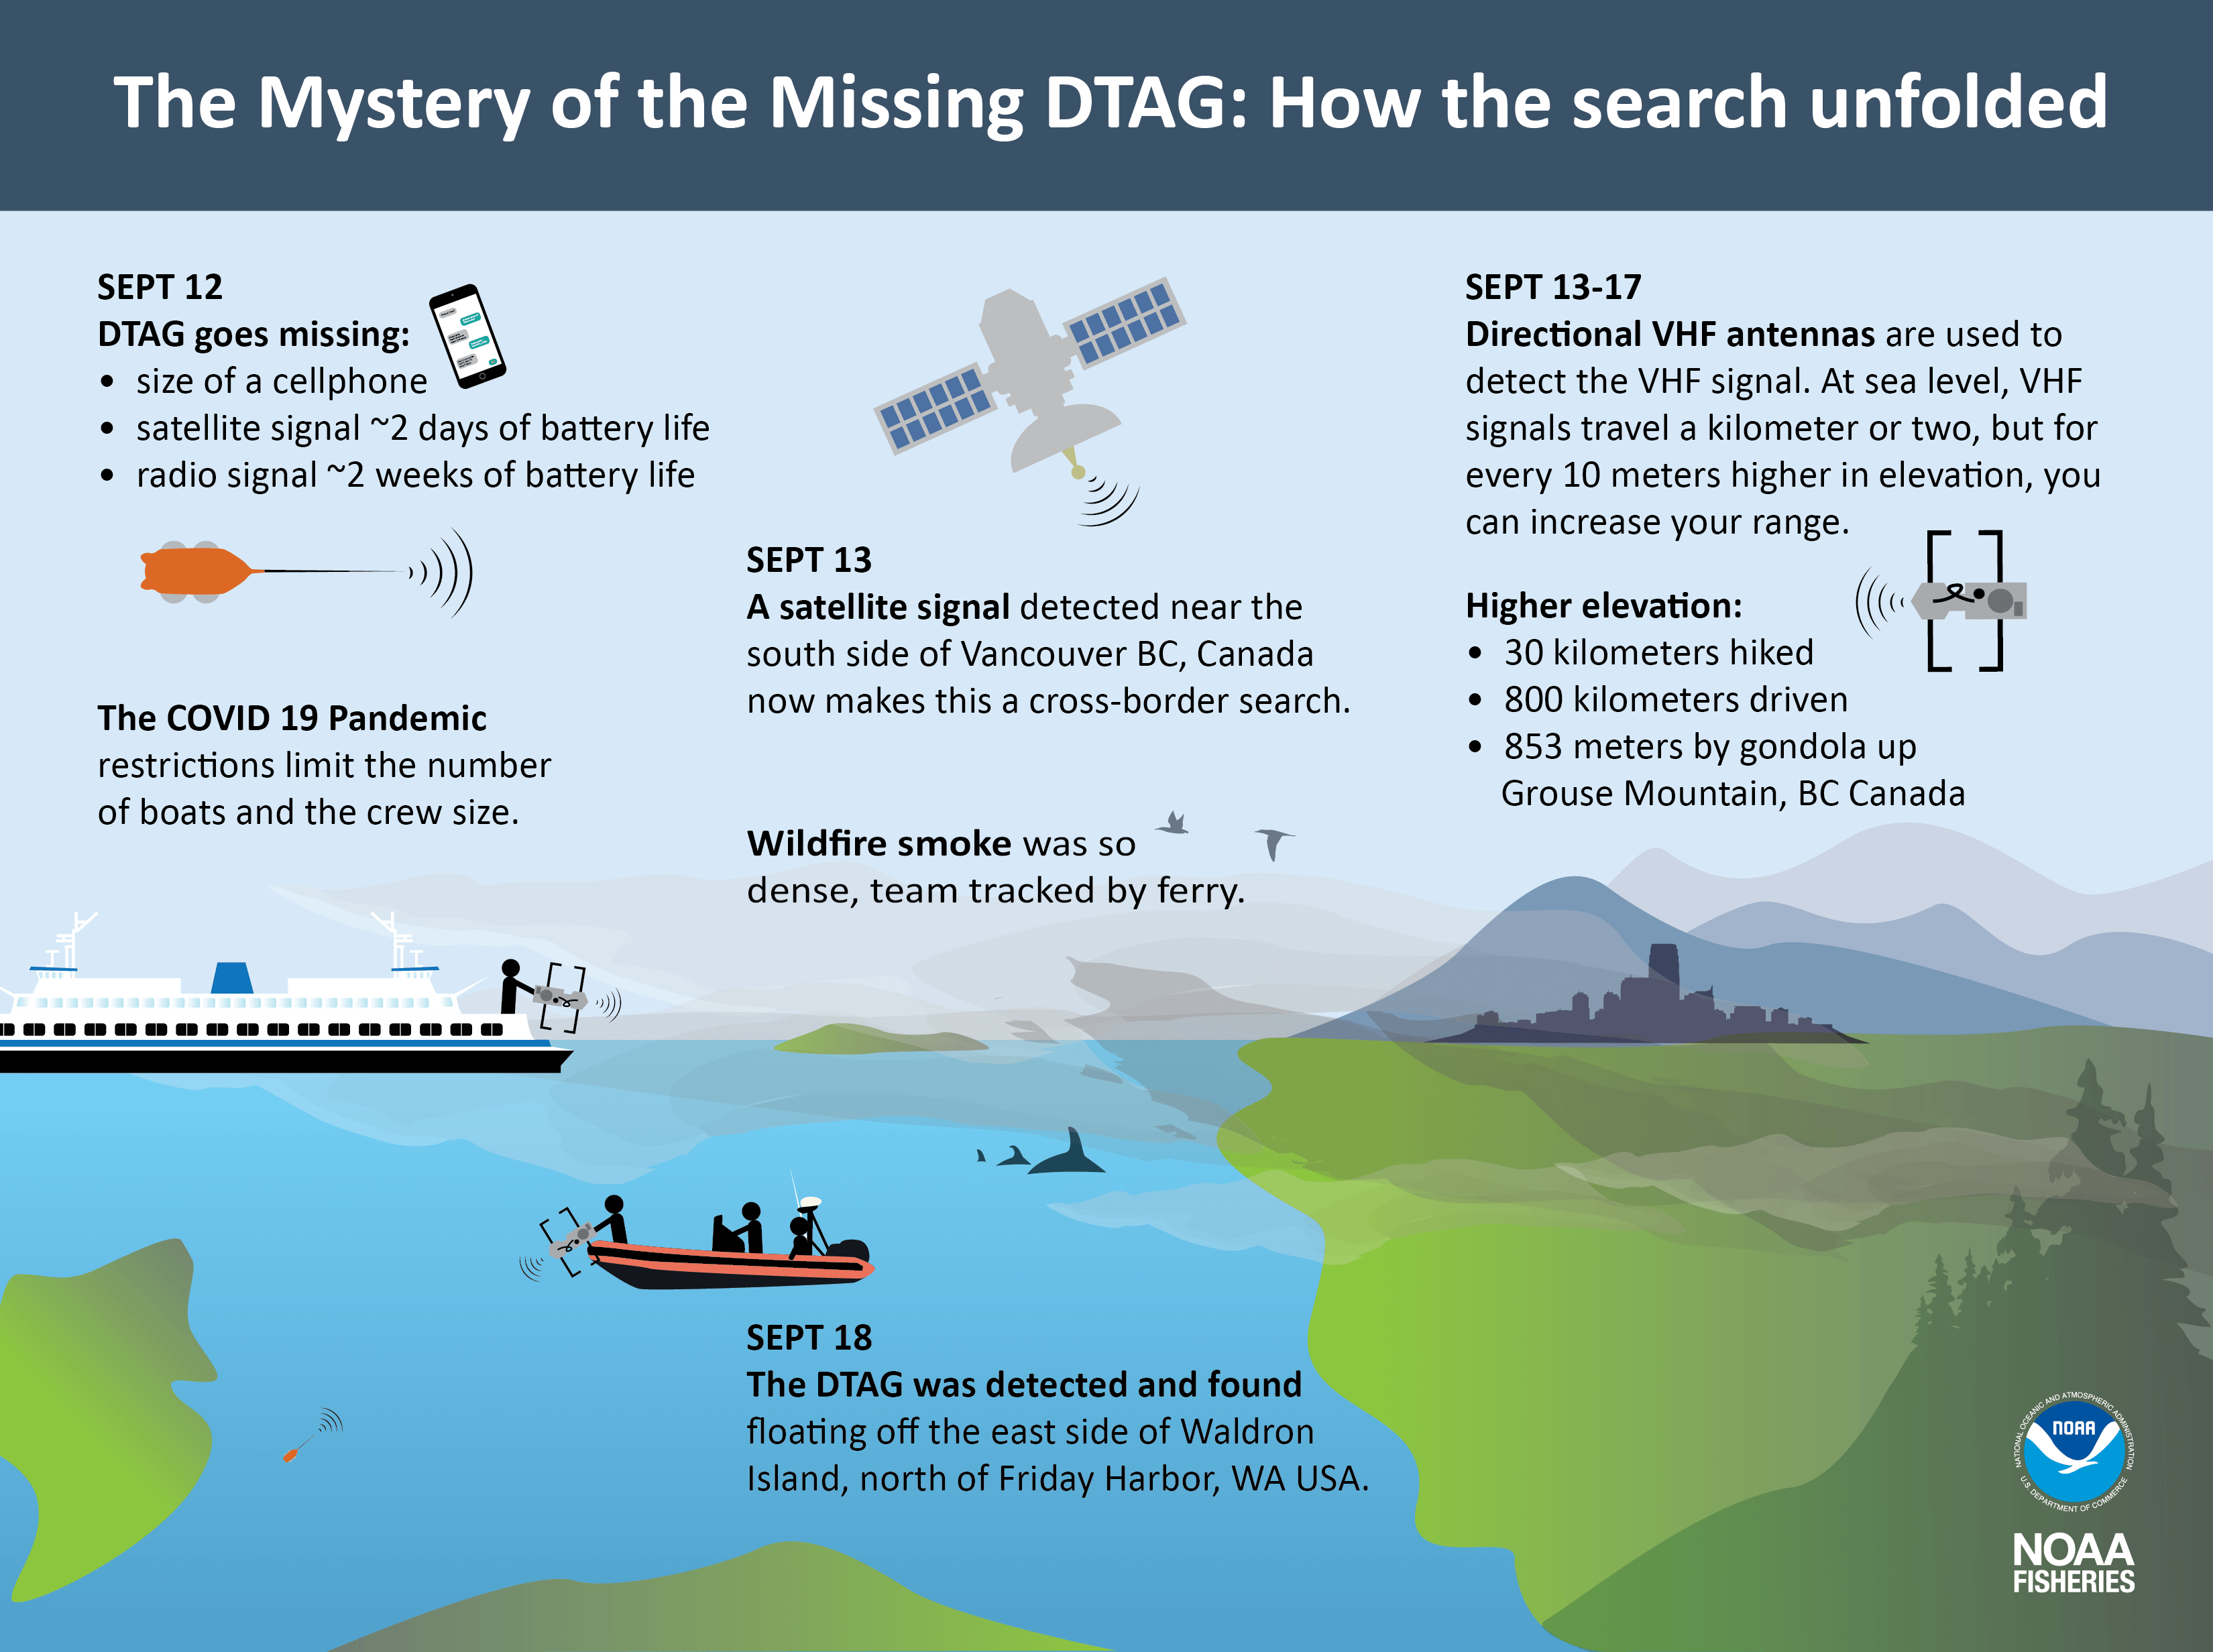 Illustration of the missing DTAG search timeline of events